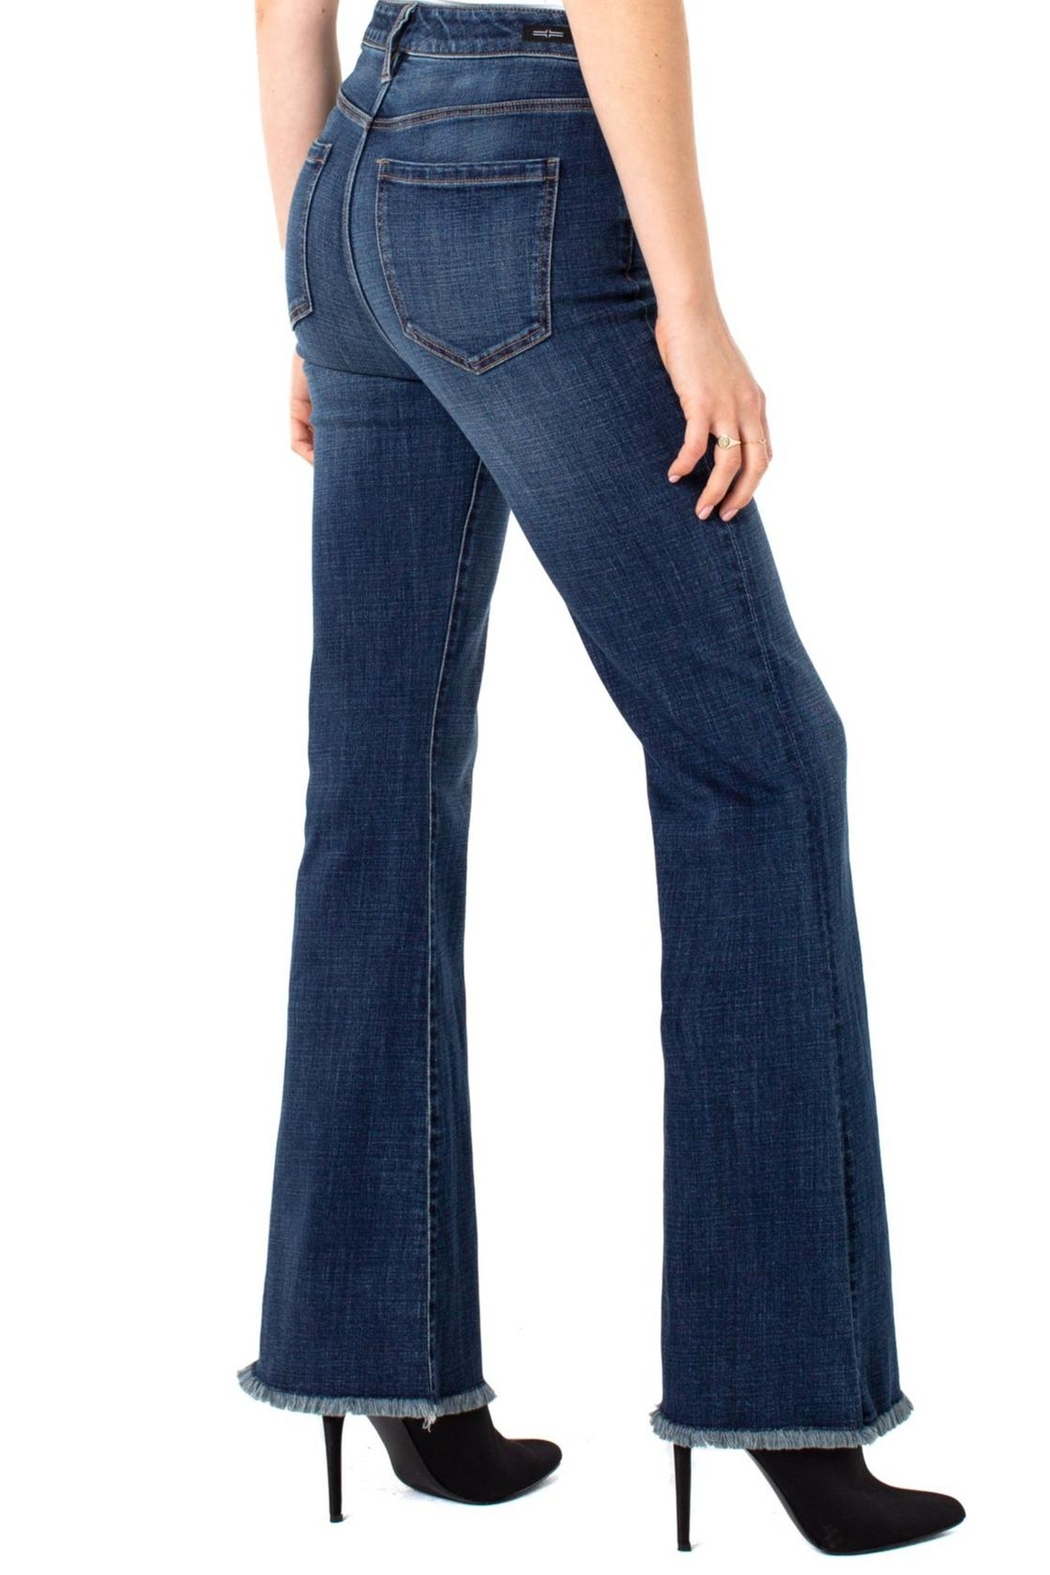 Liverpool Jeans Company Hi-Rise Flare Exposed Buttons Fray Hem Jeans - Main Image